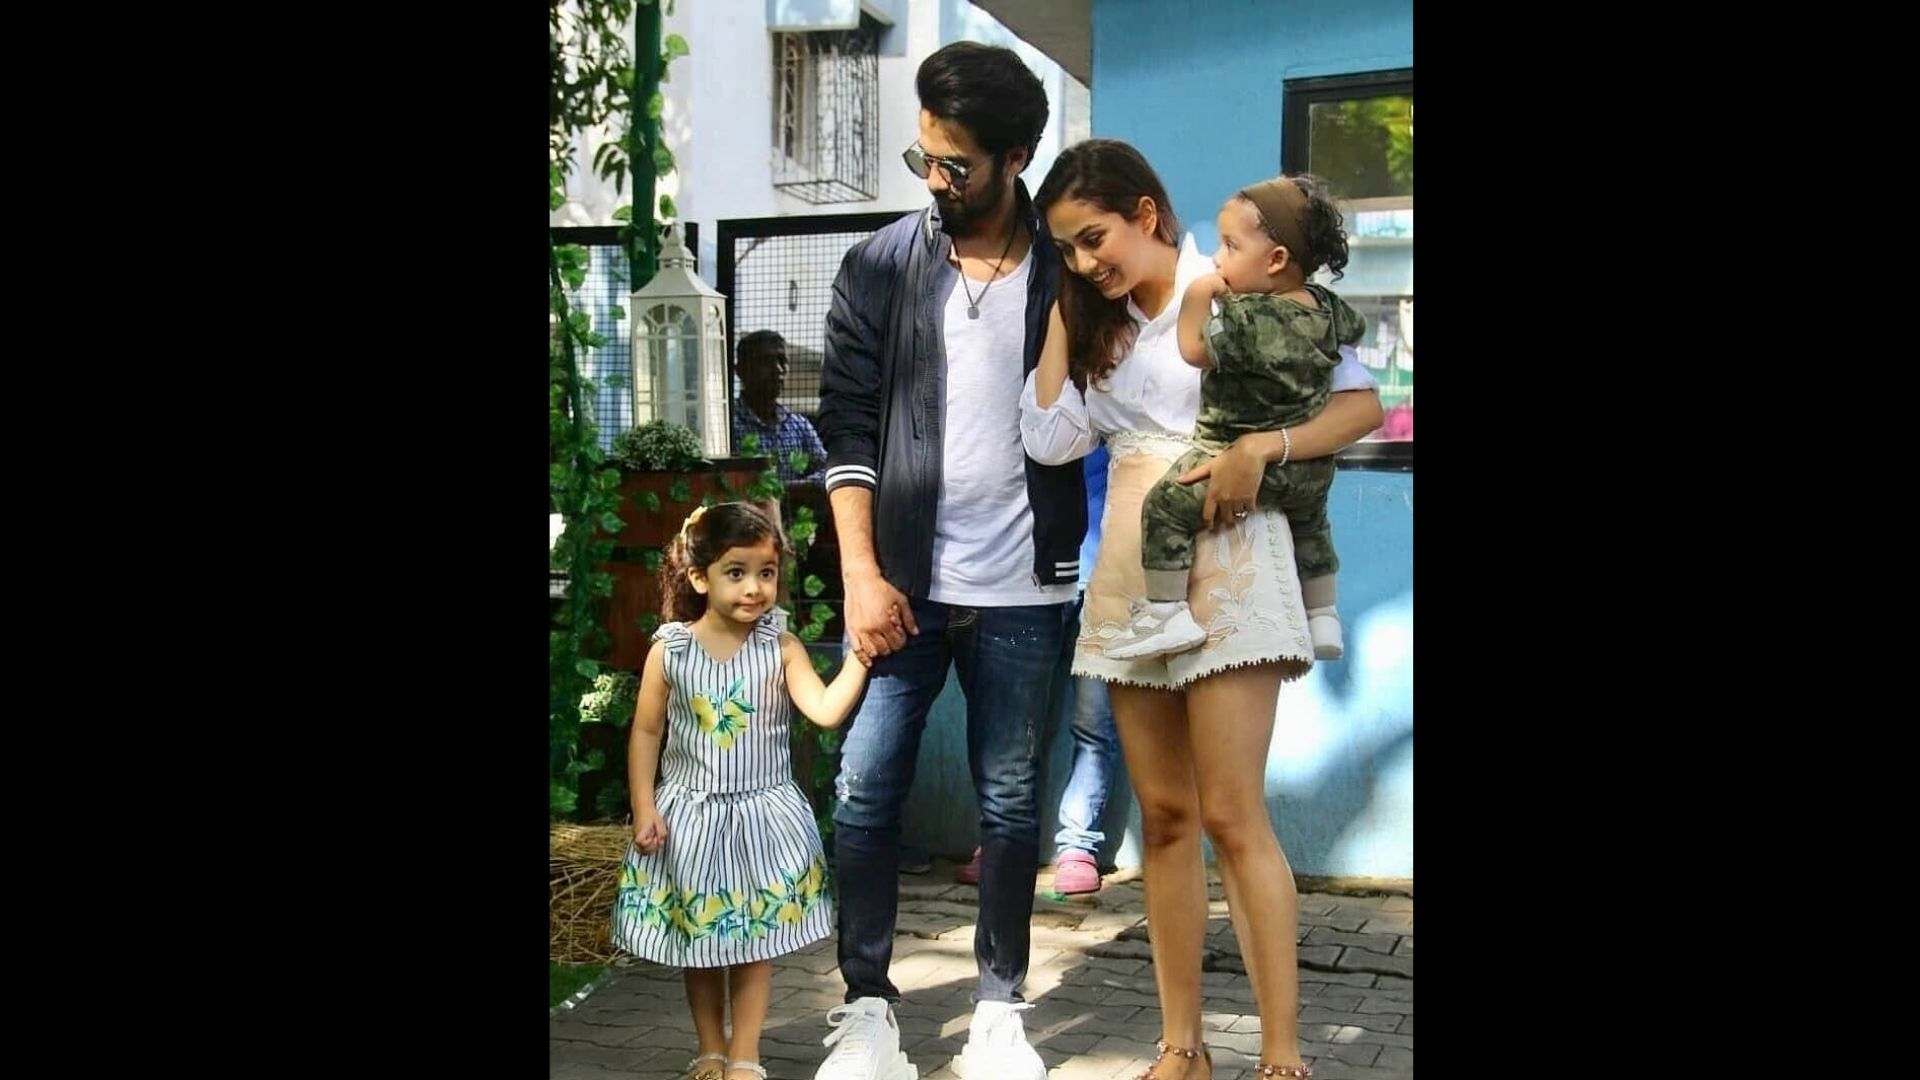 Fans Are Delighted To See Shahid Kapoor And Mira Rajput's Kids Misha And Zain All Grown Up